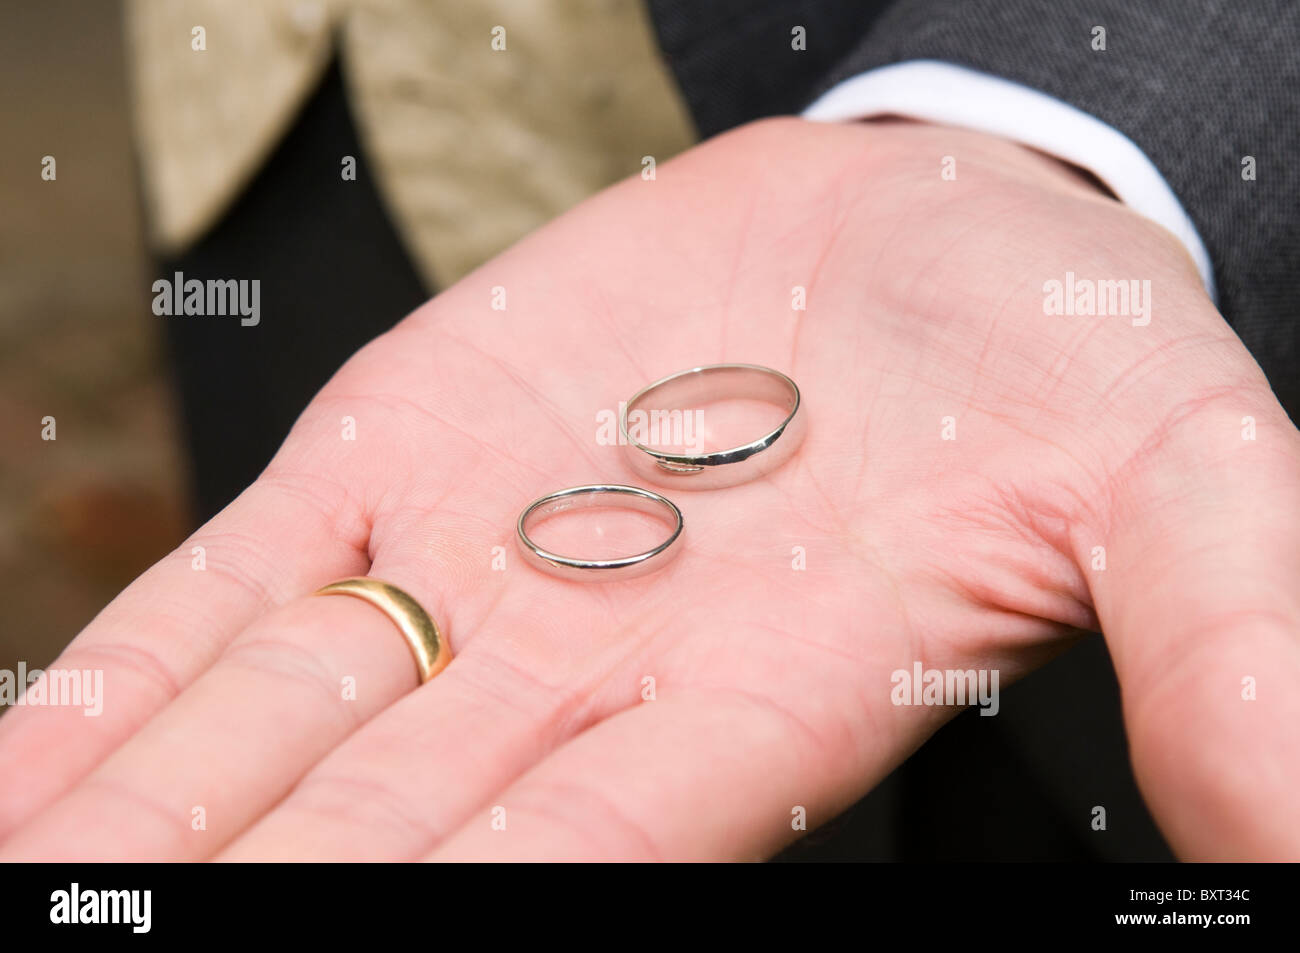 Mans Hand With Wedding Ring Stock Photos & Mans Hand With Wedding ...